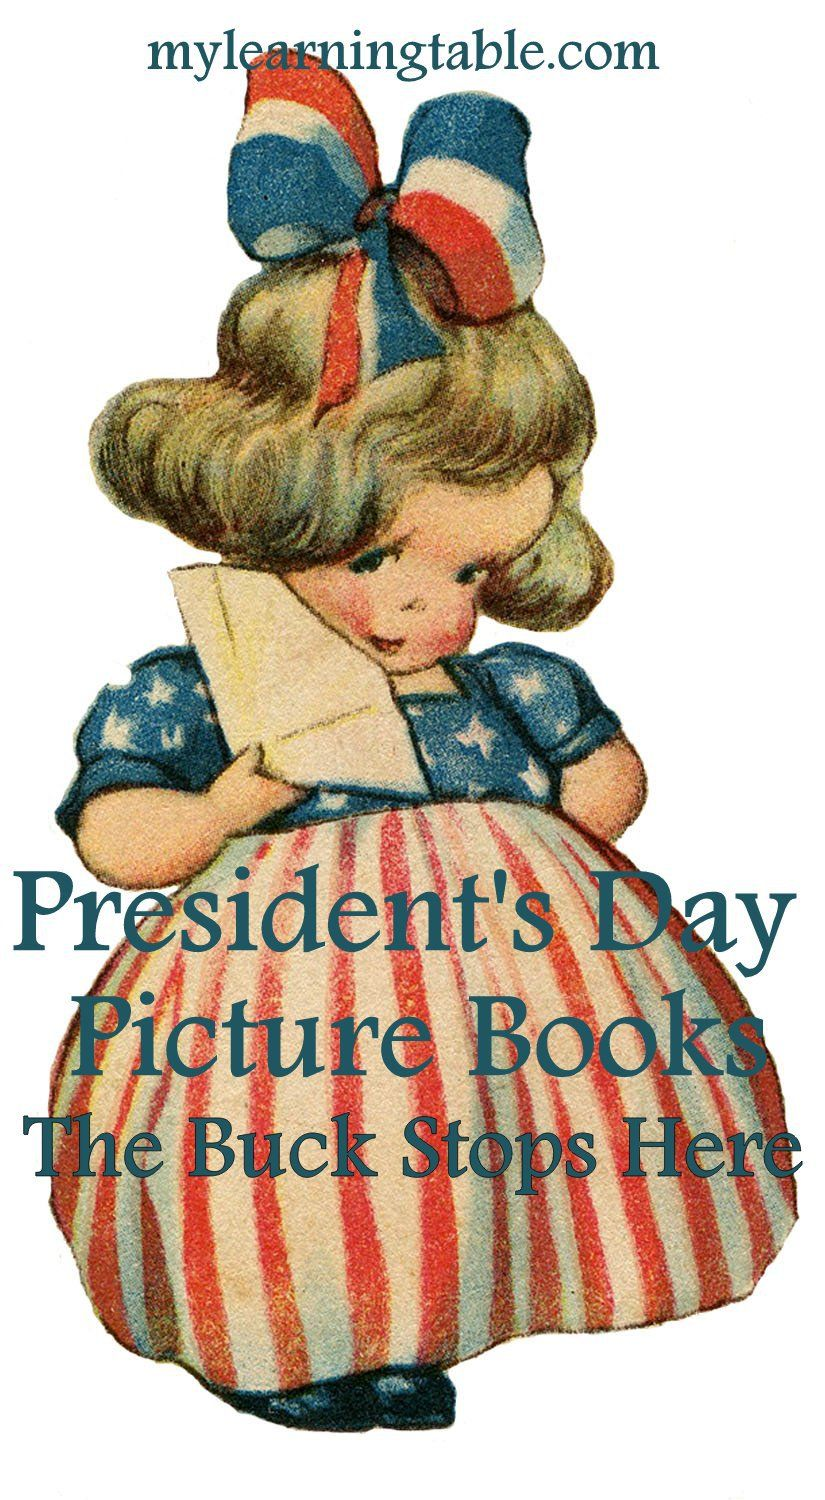 Learning About Presidents The Buck Stops Here Learning Table 4th Of July Images Patriotic Images Patriotic Kids